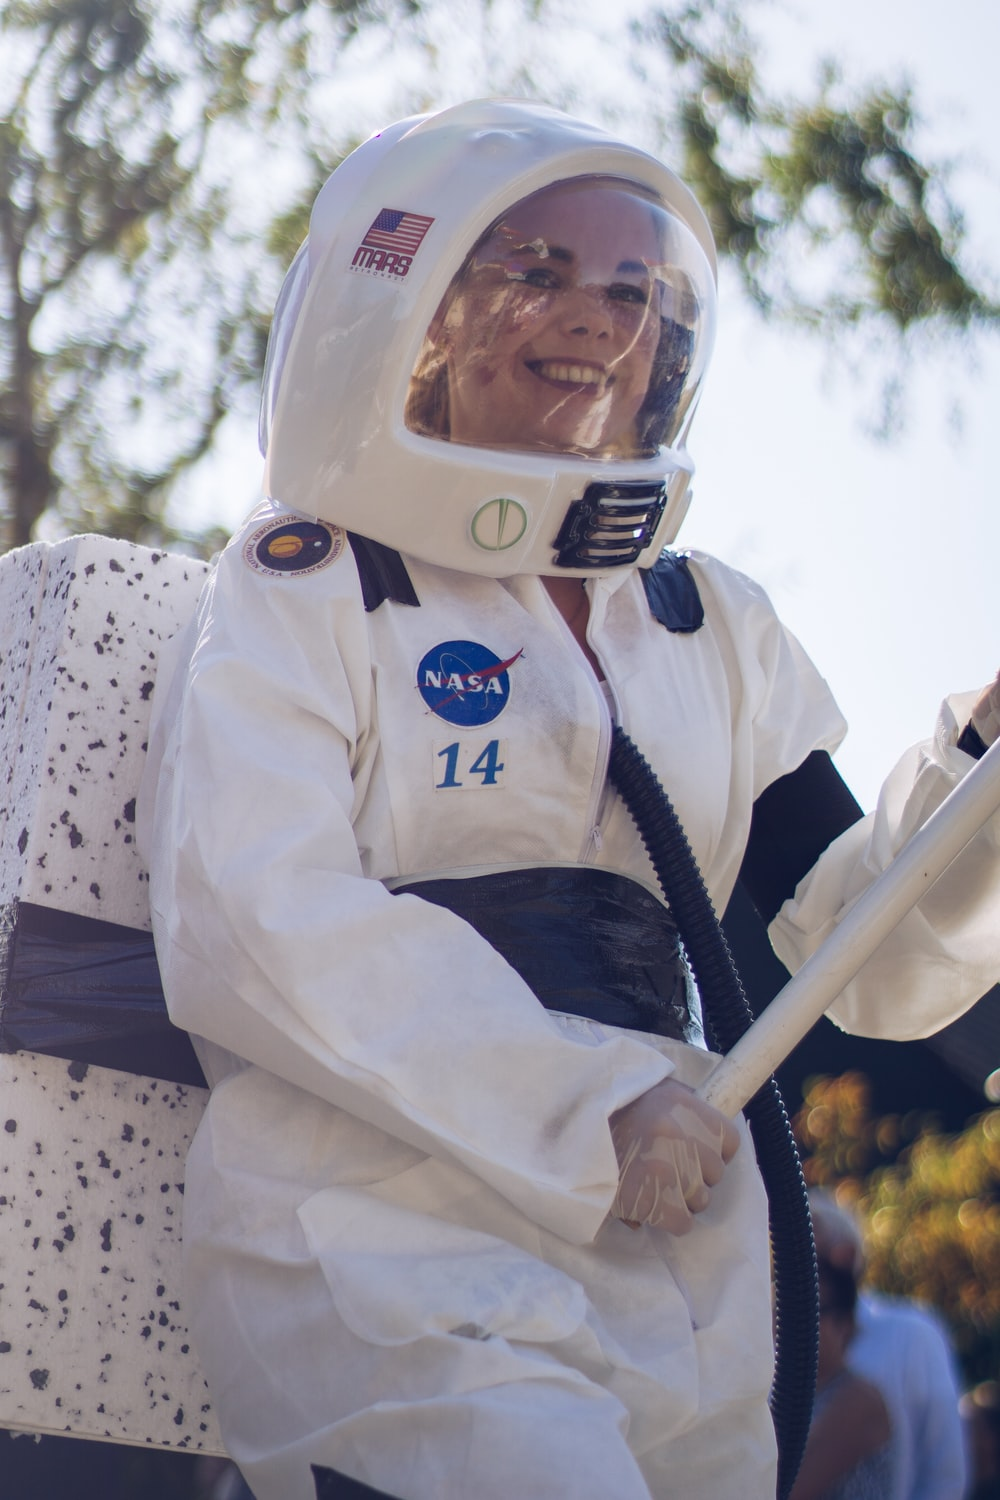 woman wearing a white and blue astronaut costume